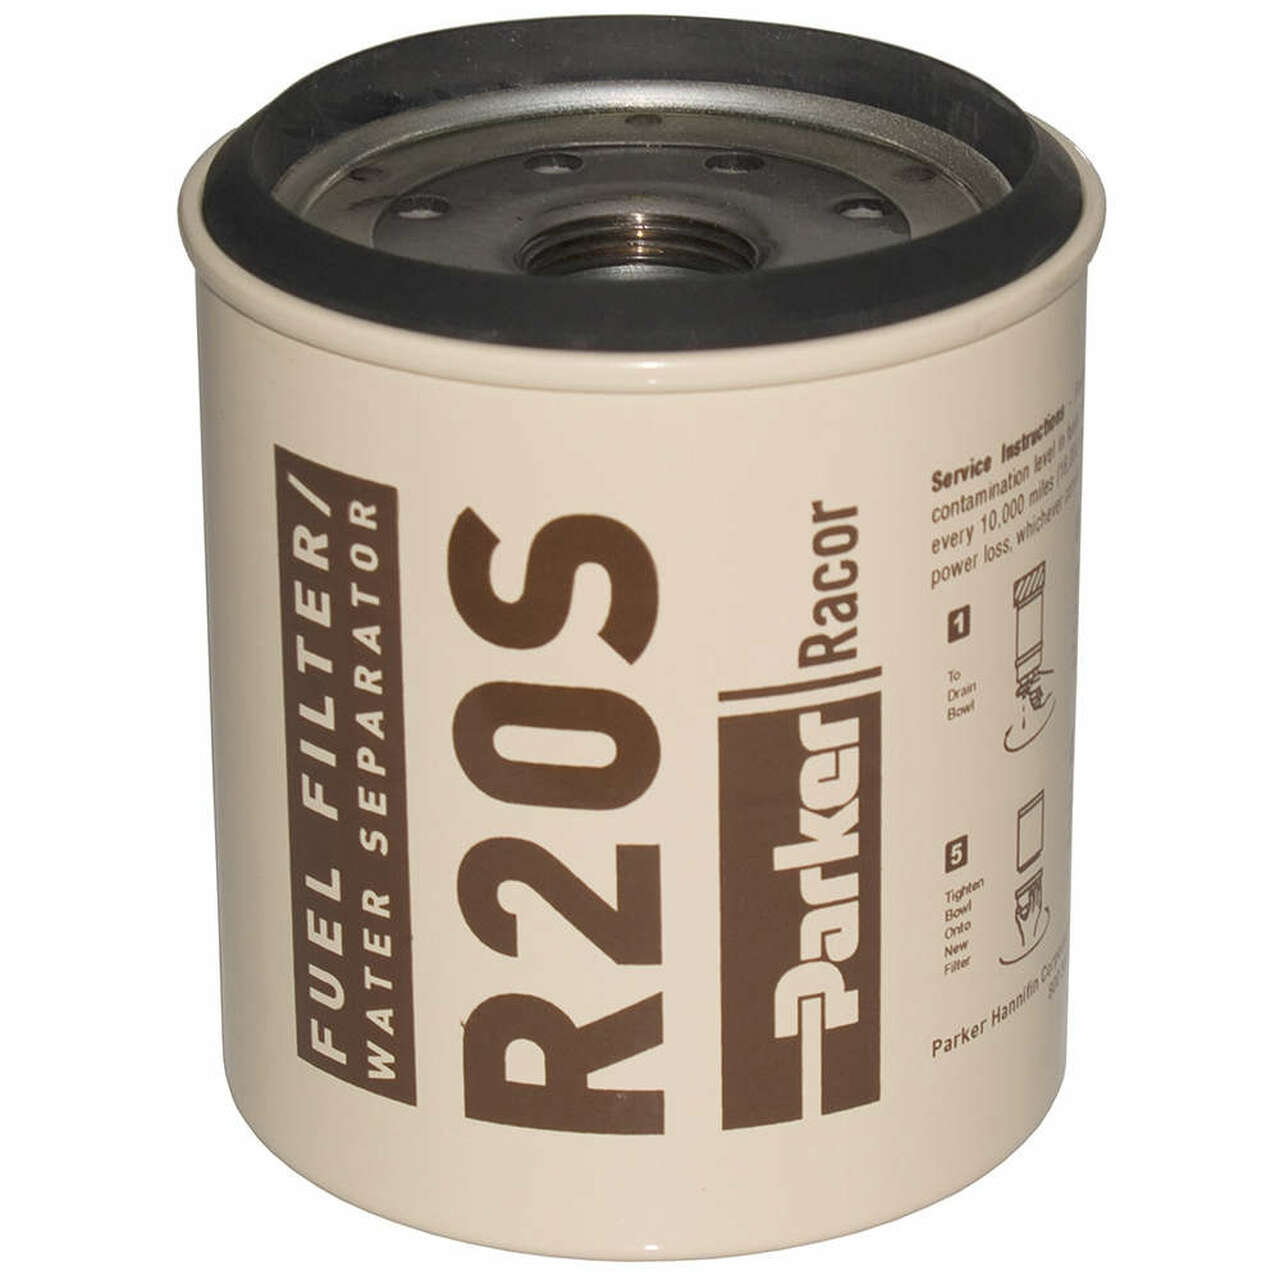 Racor 200 Series Low Flow Diesel Replacement R20S Element - 2 Micron